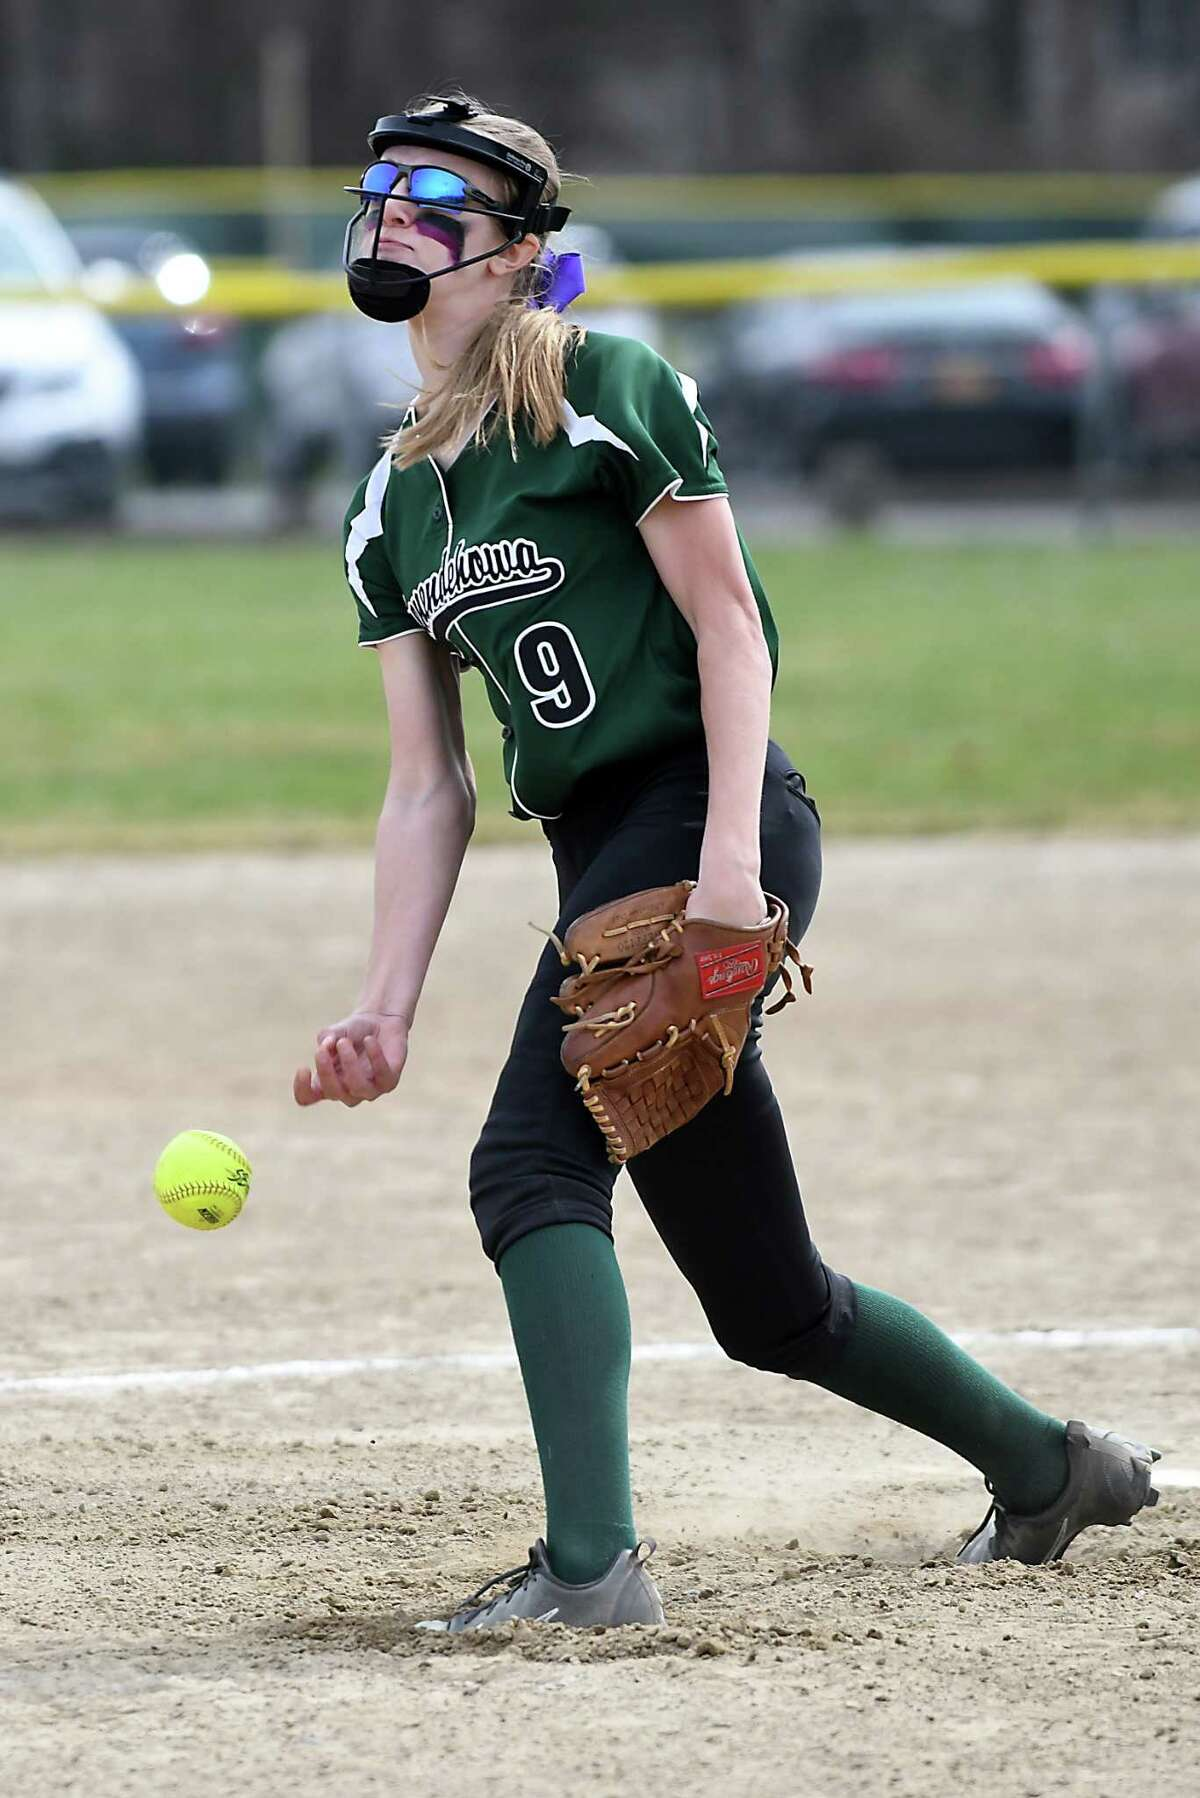 Shenendehowa pitcher Emily Carroll throws the ball during a softball game with Massapequa on Saturday, April 15, 2017 in Clifton Park, N.Y. (Lori Van Buren / Times Union)